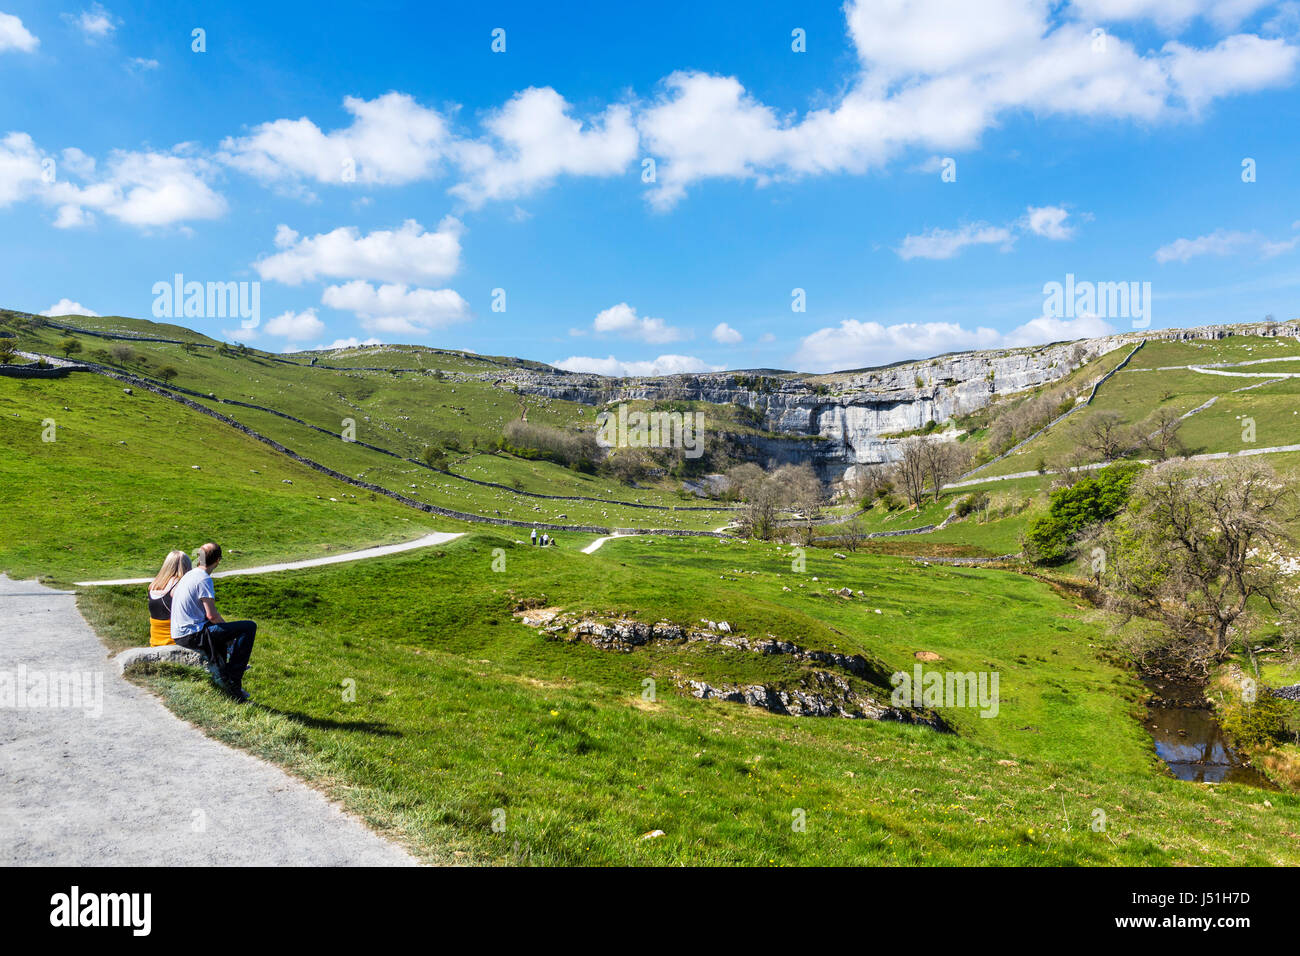 Footpath to Malham Cove, Malham, Malhamdale, Yorkshire Dales National Park, North Yorkshire, England, UK. - Stock Image